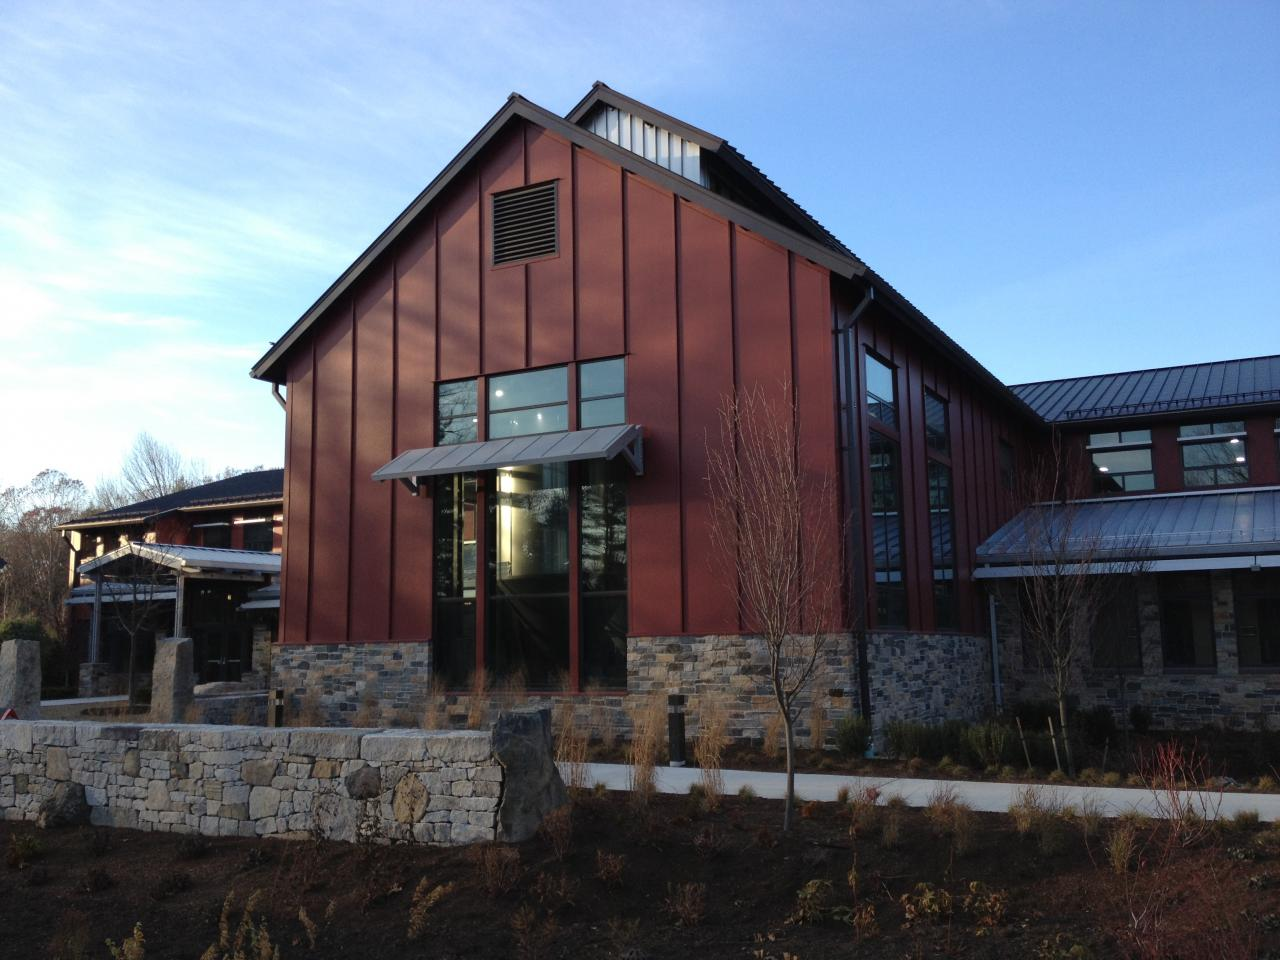 LEED Certification, industrial, hospitality, on-site renewable energy, state-of-the-art facility, brewery, craft, agrarian vernacular